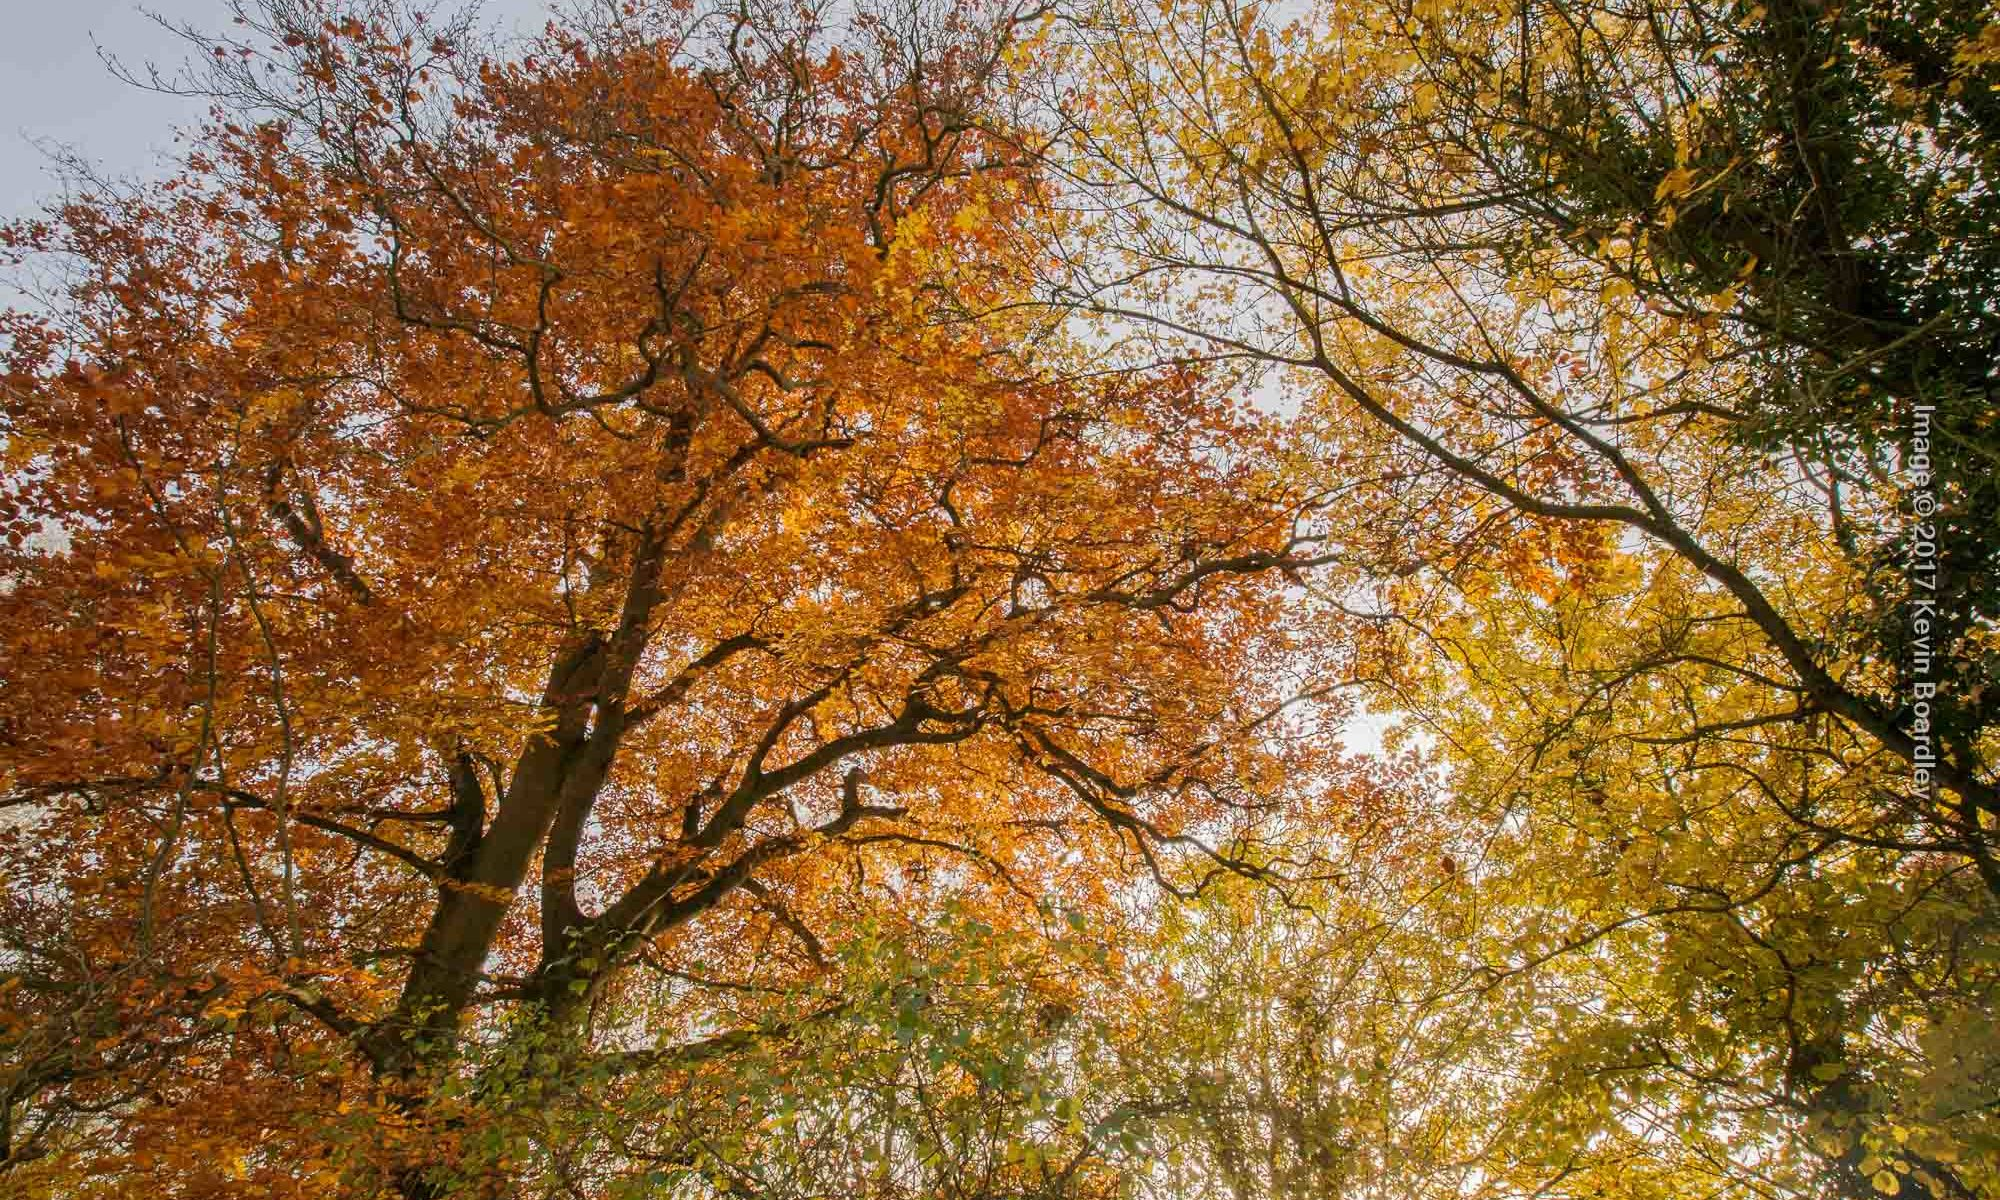 Looking up into the autumn trees, Walsham le Willows